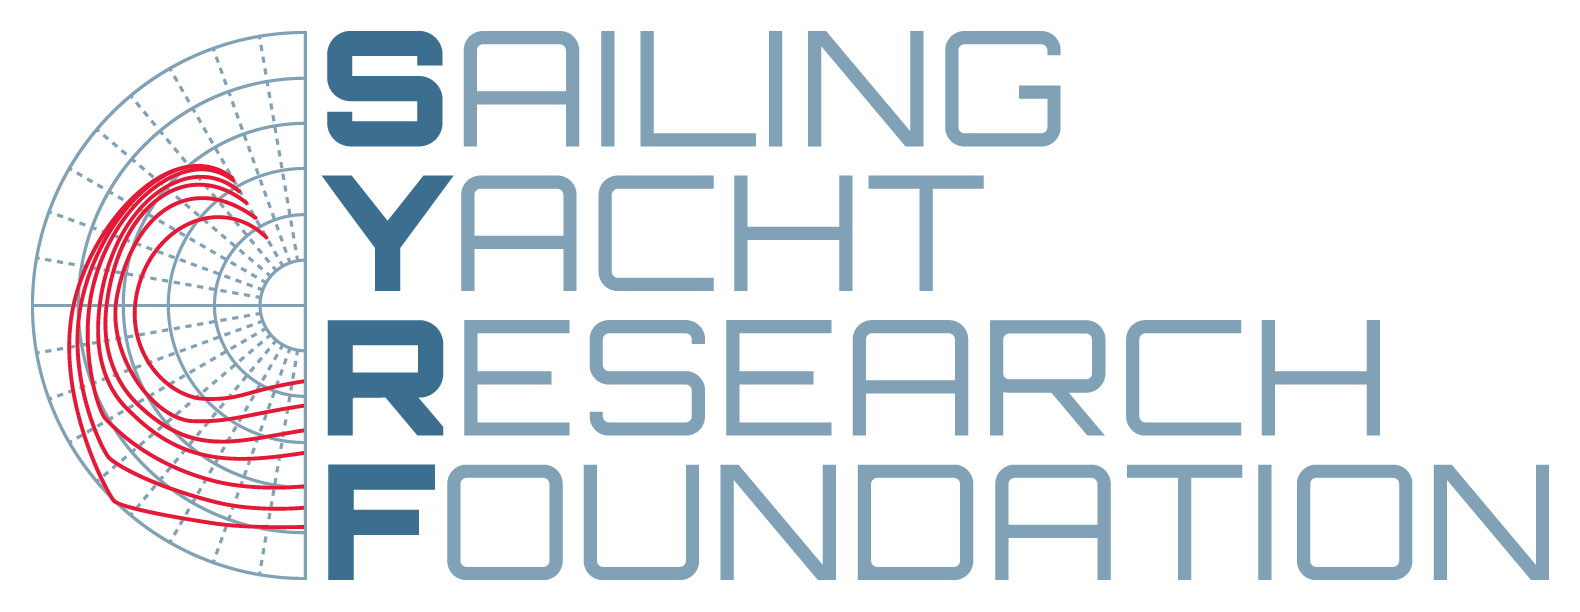 Sailing Yacht Research Foundation